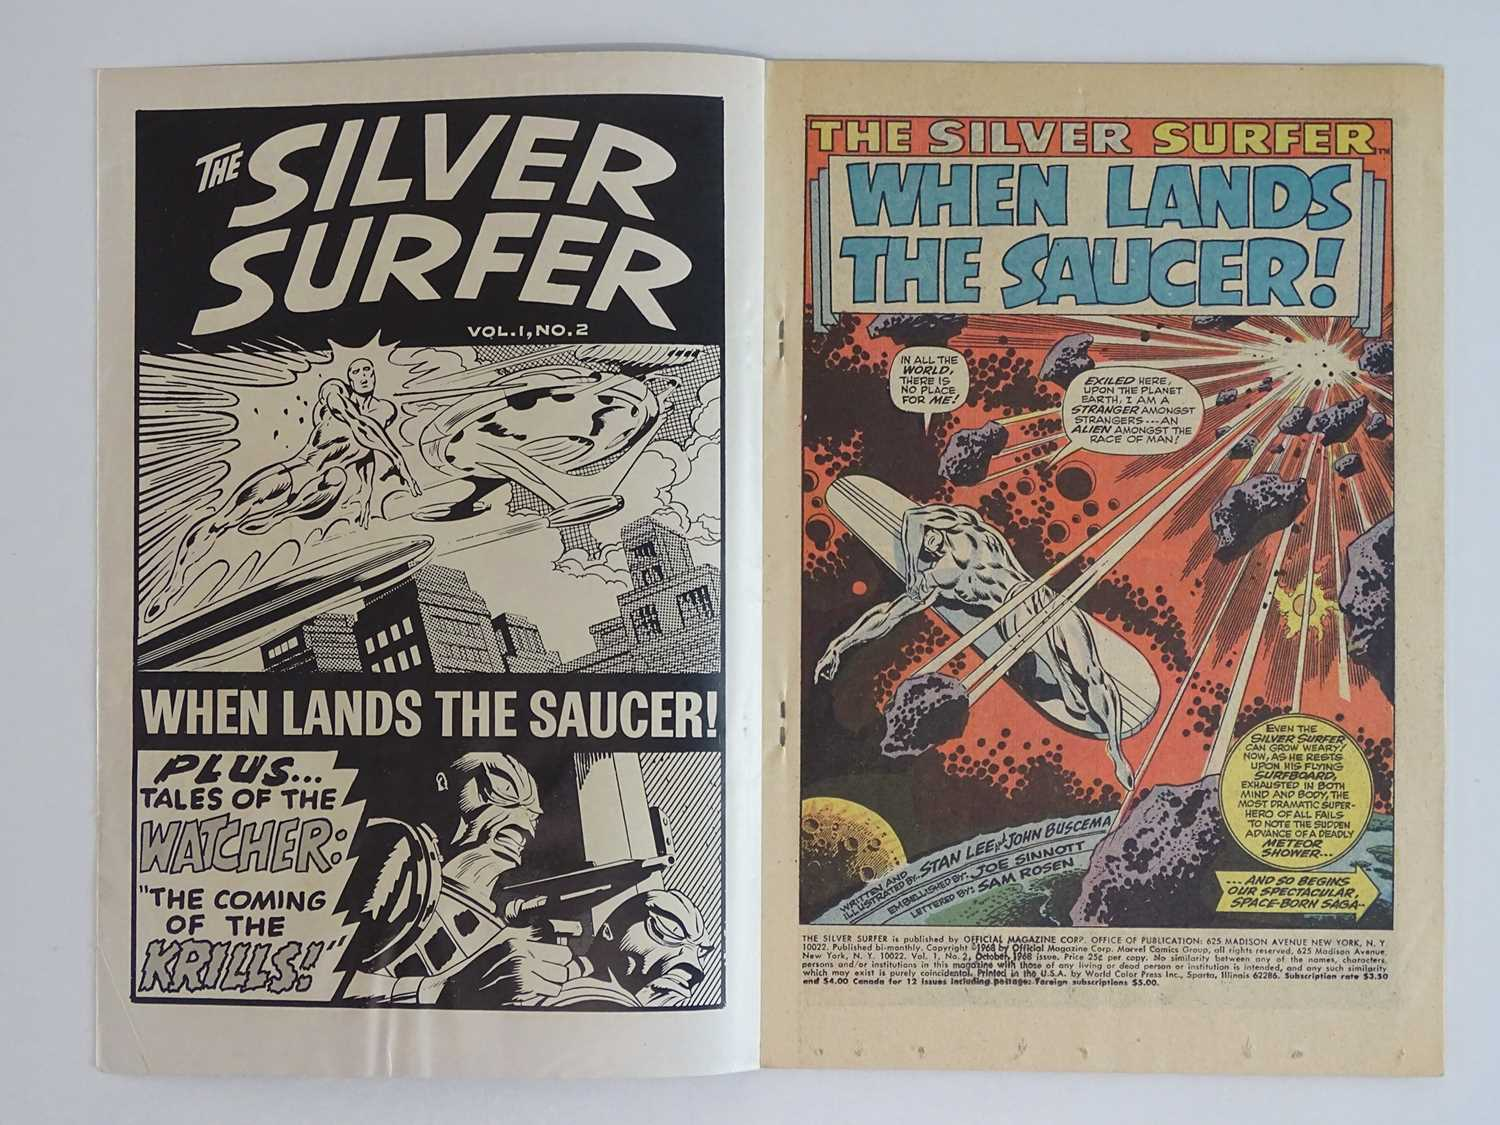 SILVER SURFER #2 - (1968 - MARVEL) - First appearance of the Brotherhood of Badoon + backup story - Image 3 of 8